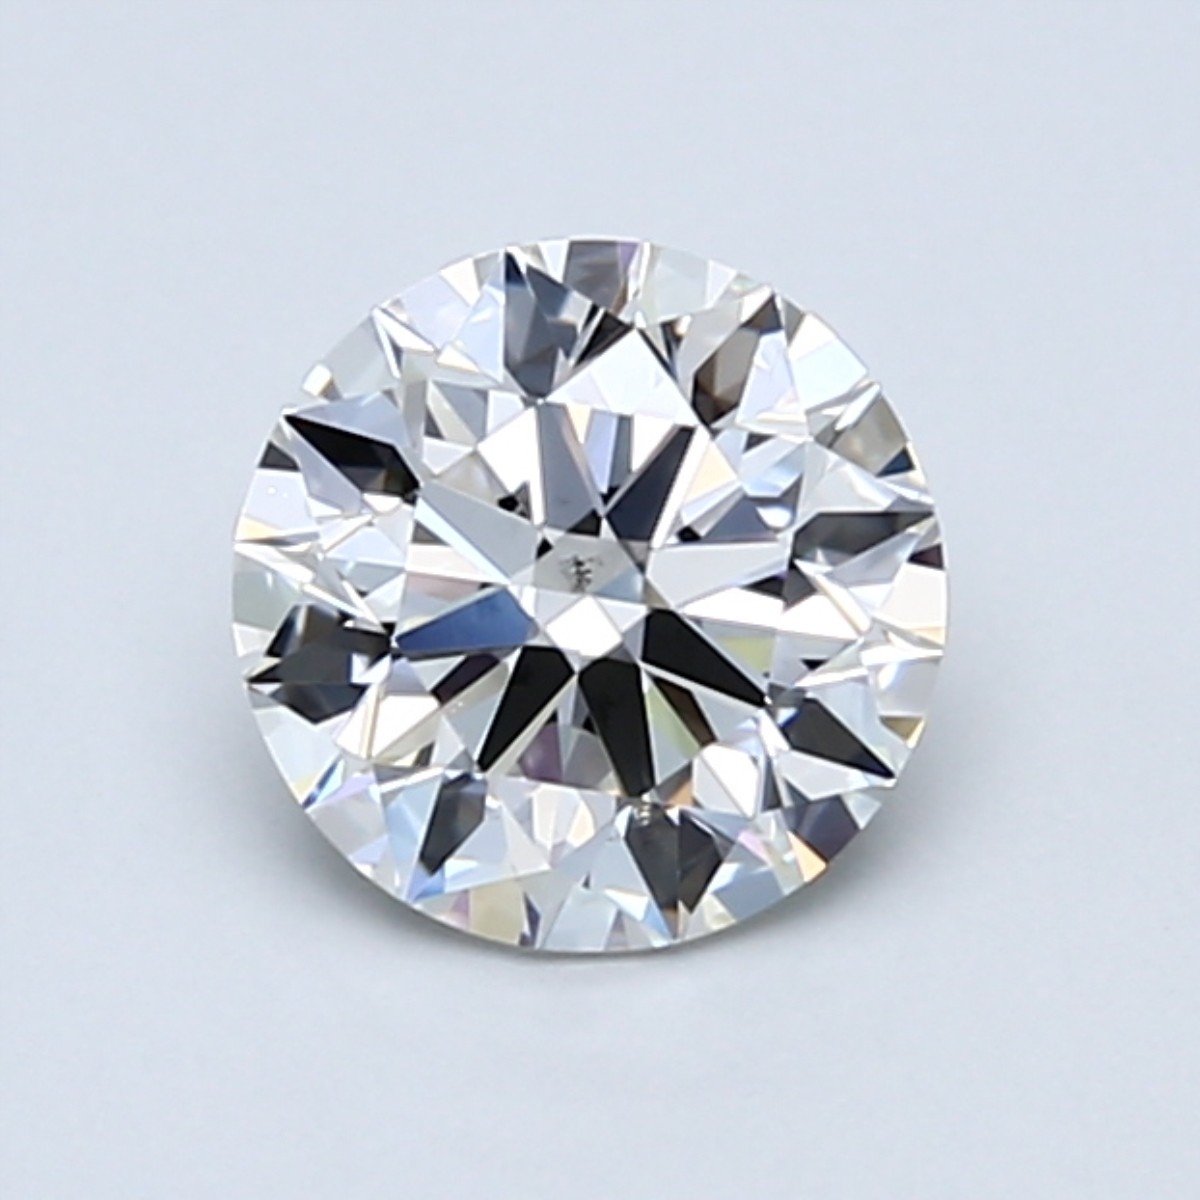 Round 1.05 Carat G Color VS2 Clarity For Sale